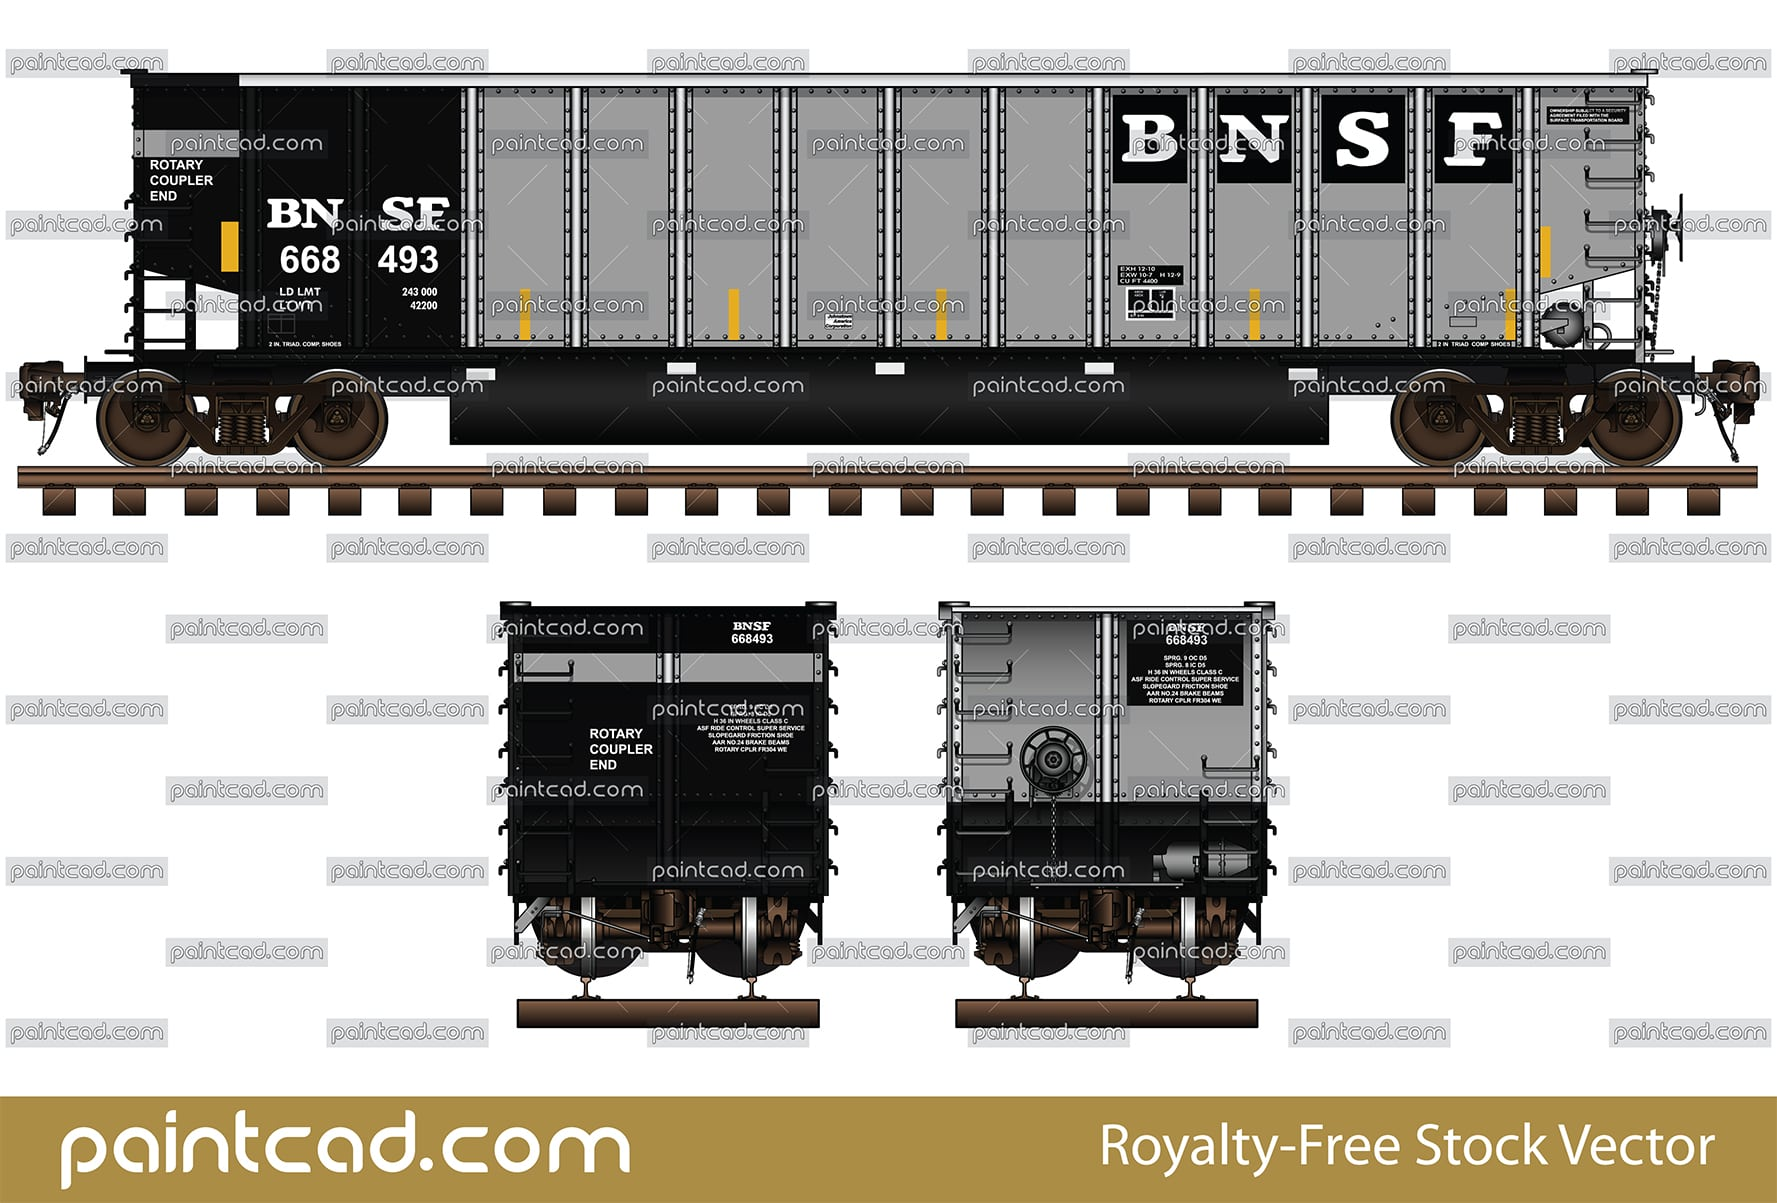 Aluminum bethgon coalporter in livery of BNSF Railway - vector illustration